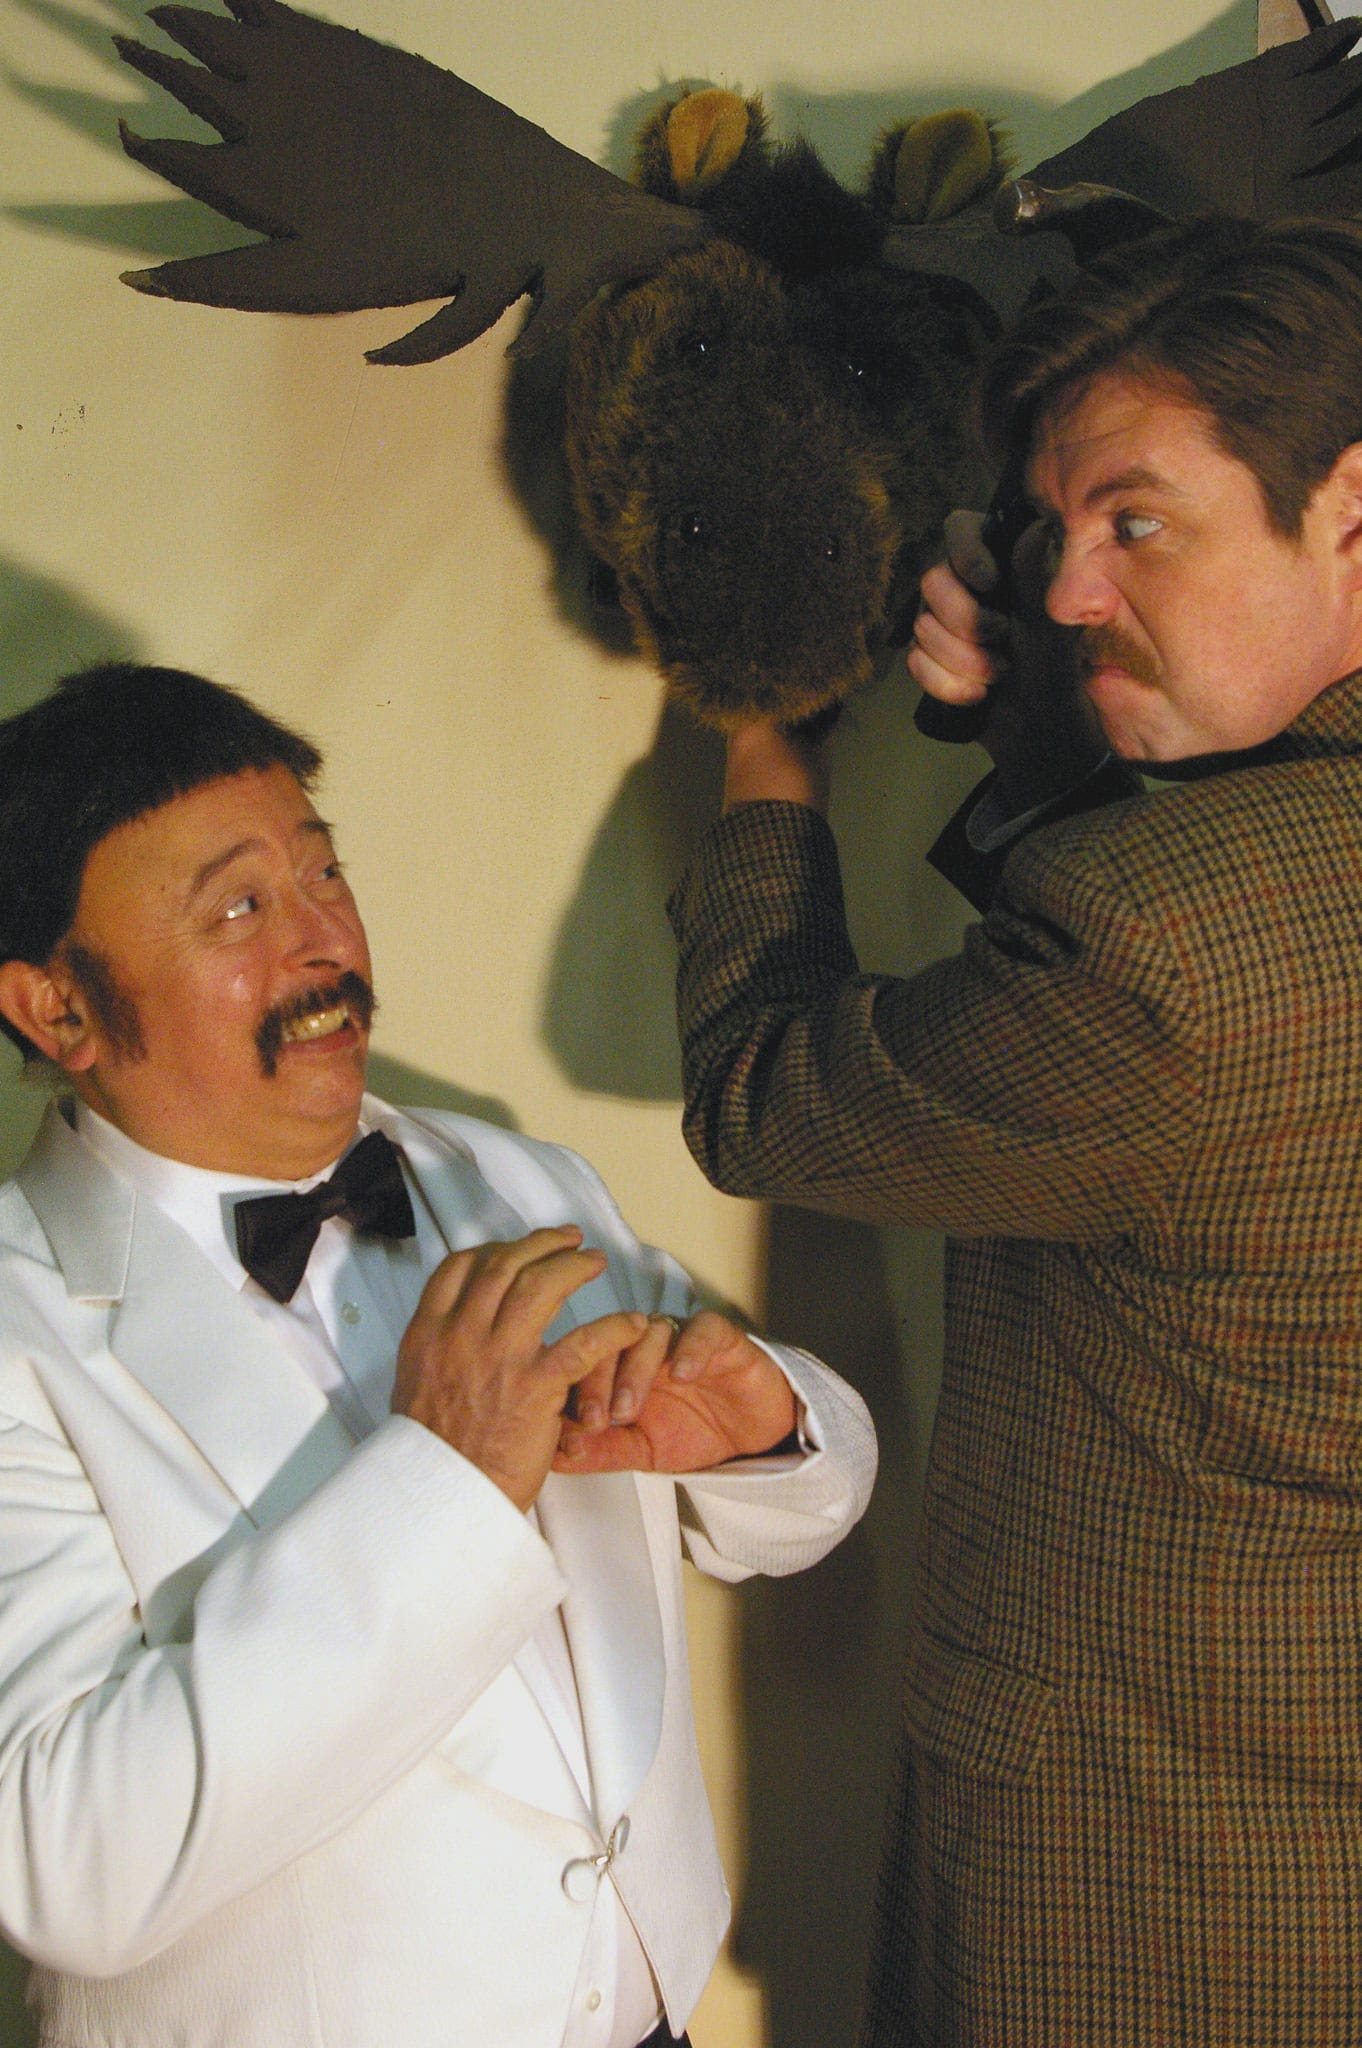 FAWLTY TOWERS – 3 More Episodes at the Metro Theatre Vancouver